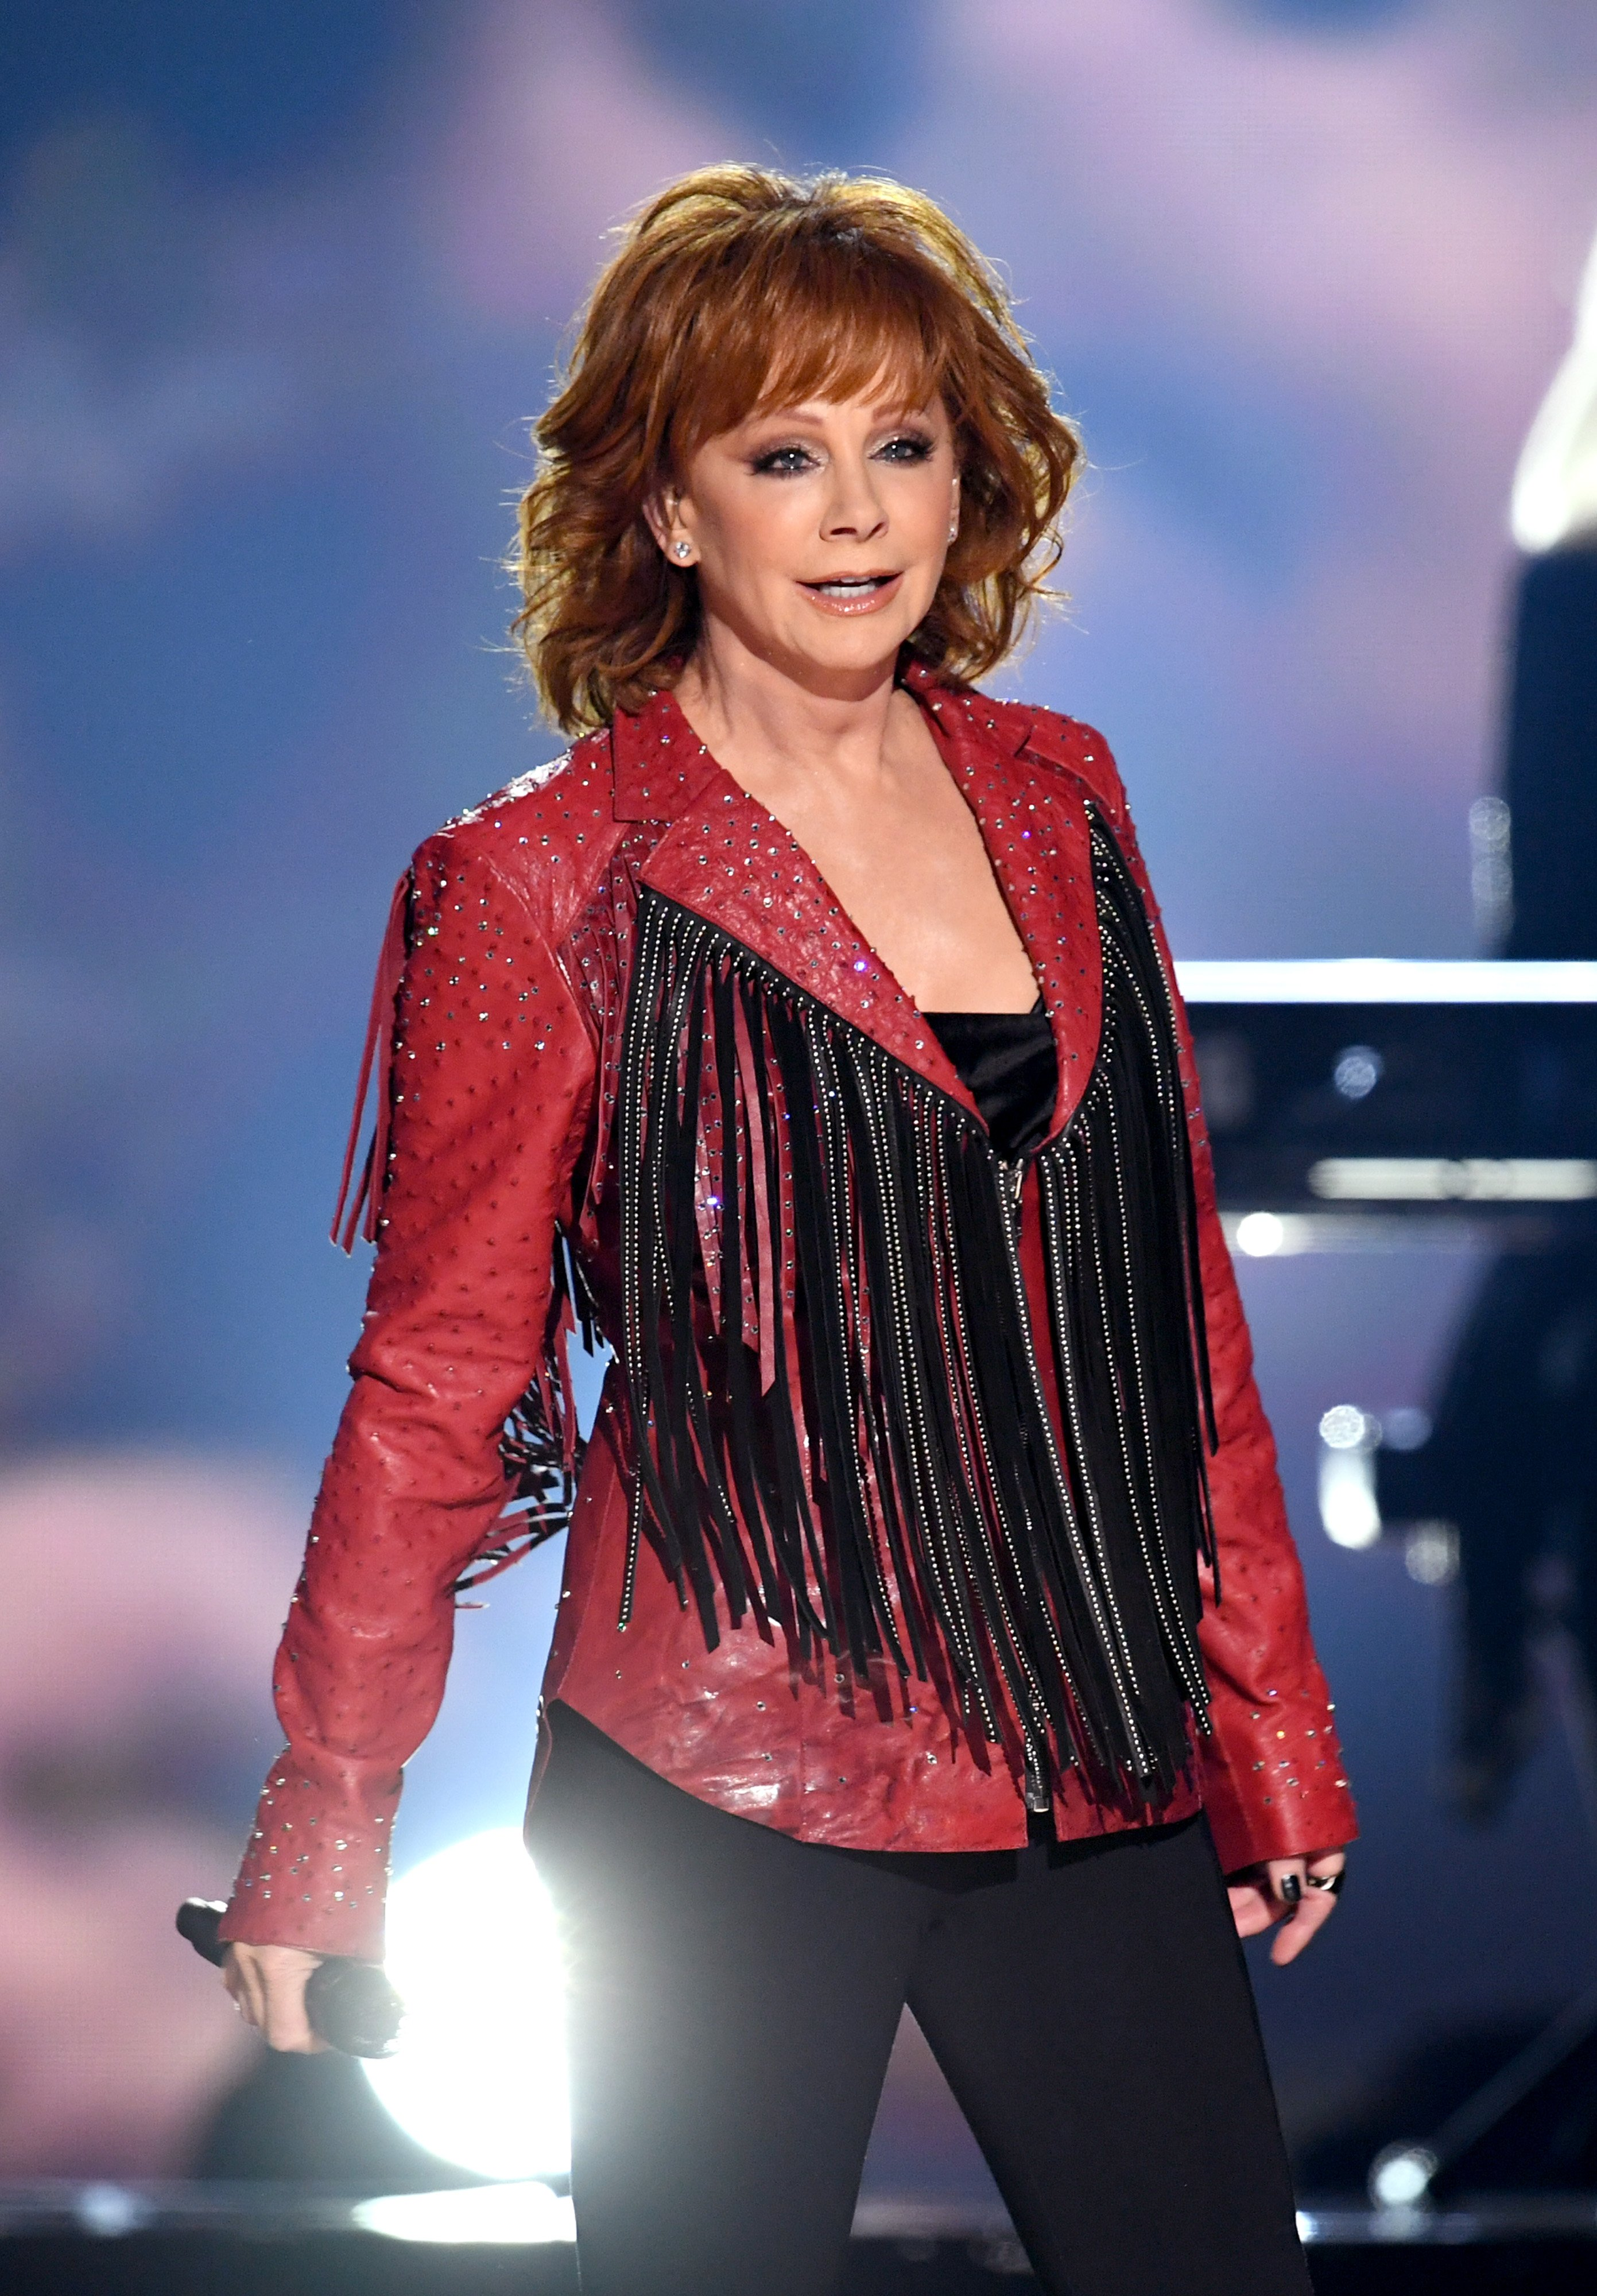 Reba McEntire performs during the 54th Academy Of Country Music Awards on April 07, 2019, in Las Vegas, Nevada. | Source: Getty Images.